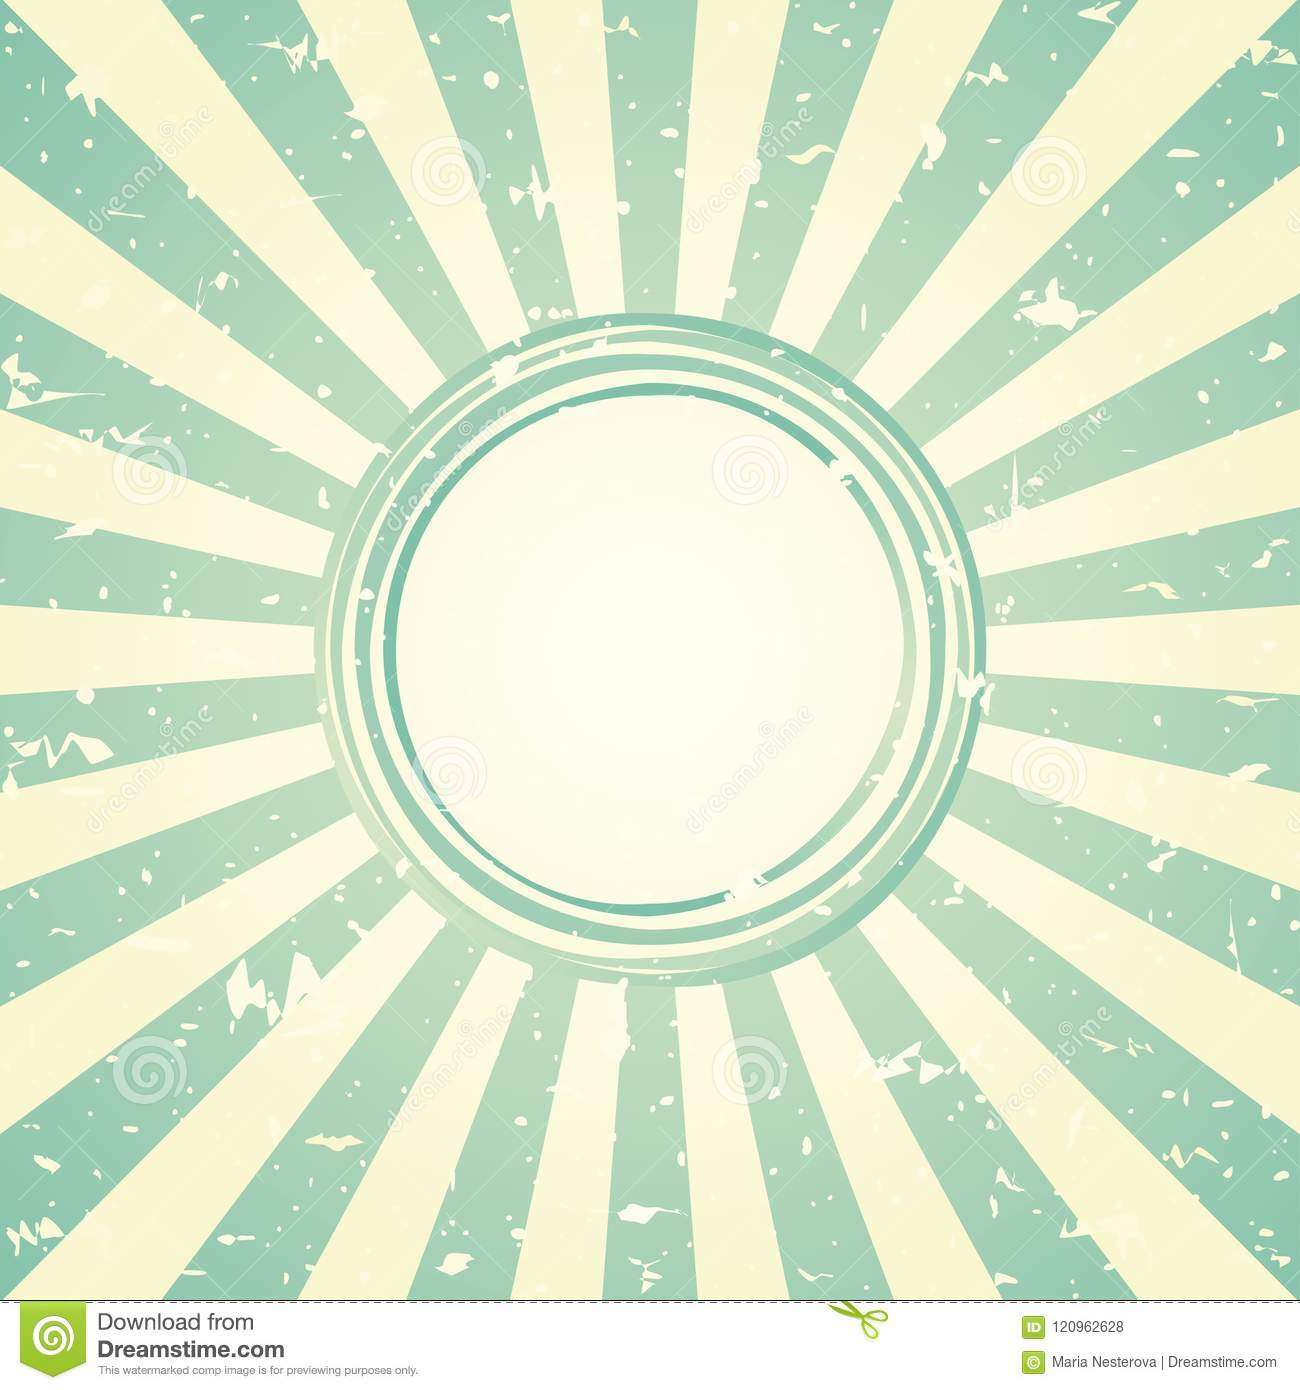 Sunlight retro faded wide background with shabby round frame for text. blue and green color burst background.